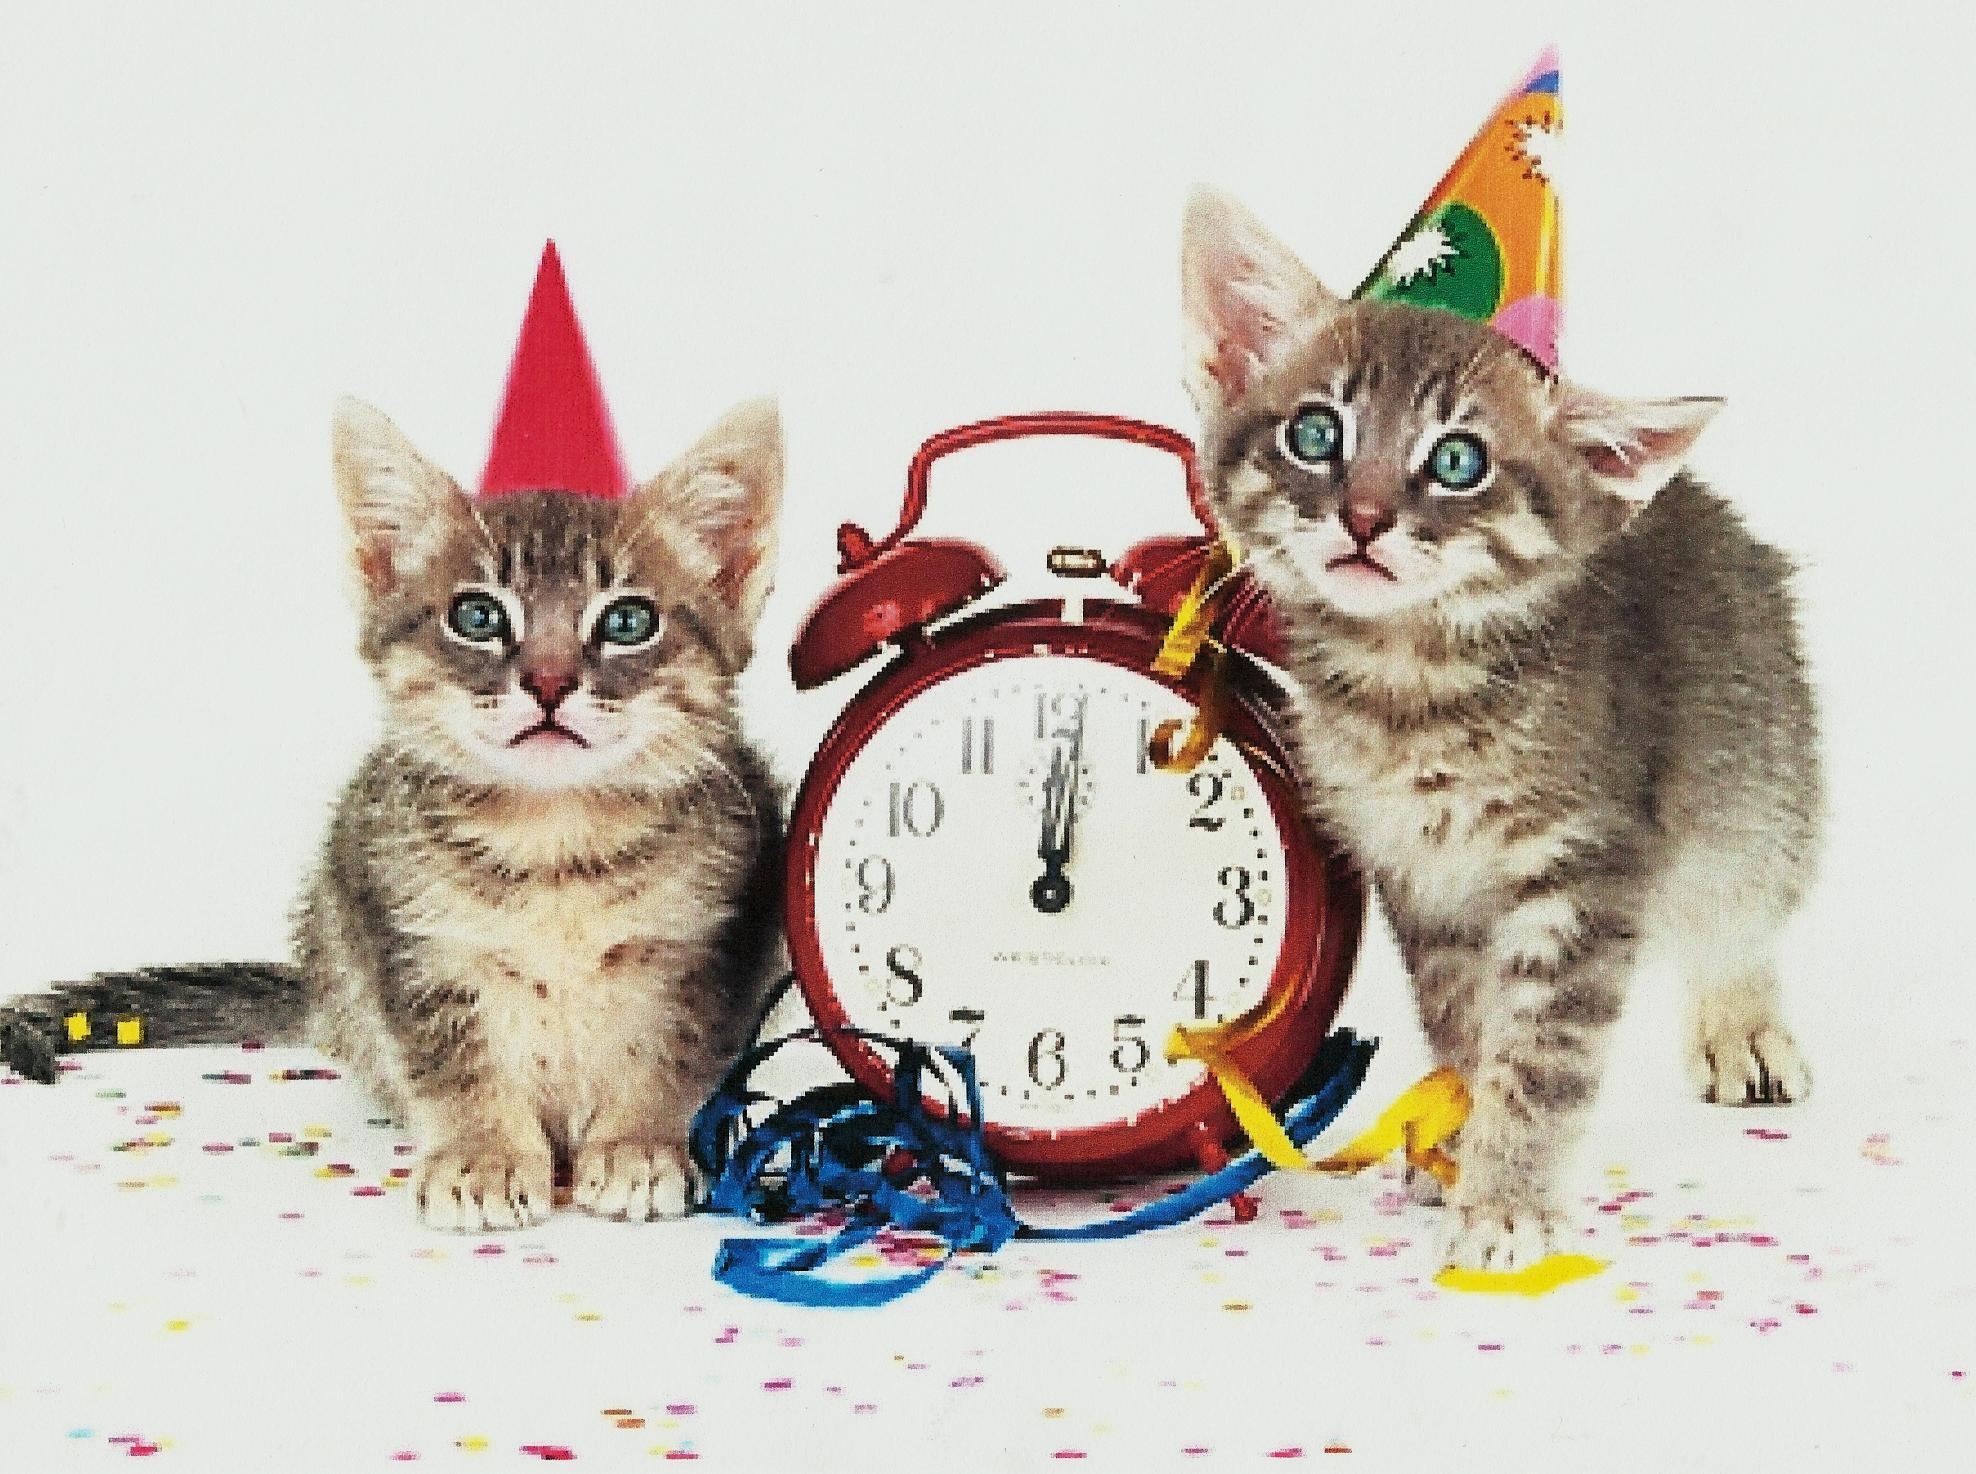 New Yearu0027s Cat Wallpapers - Top Free New Yearu0027s Cat Backgrounds